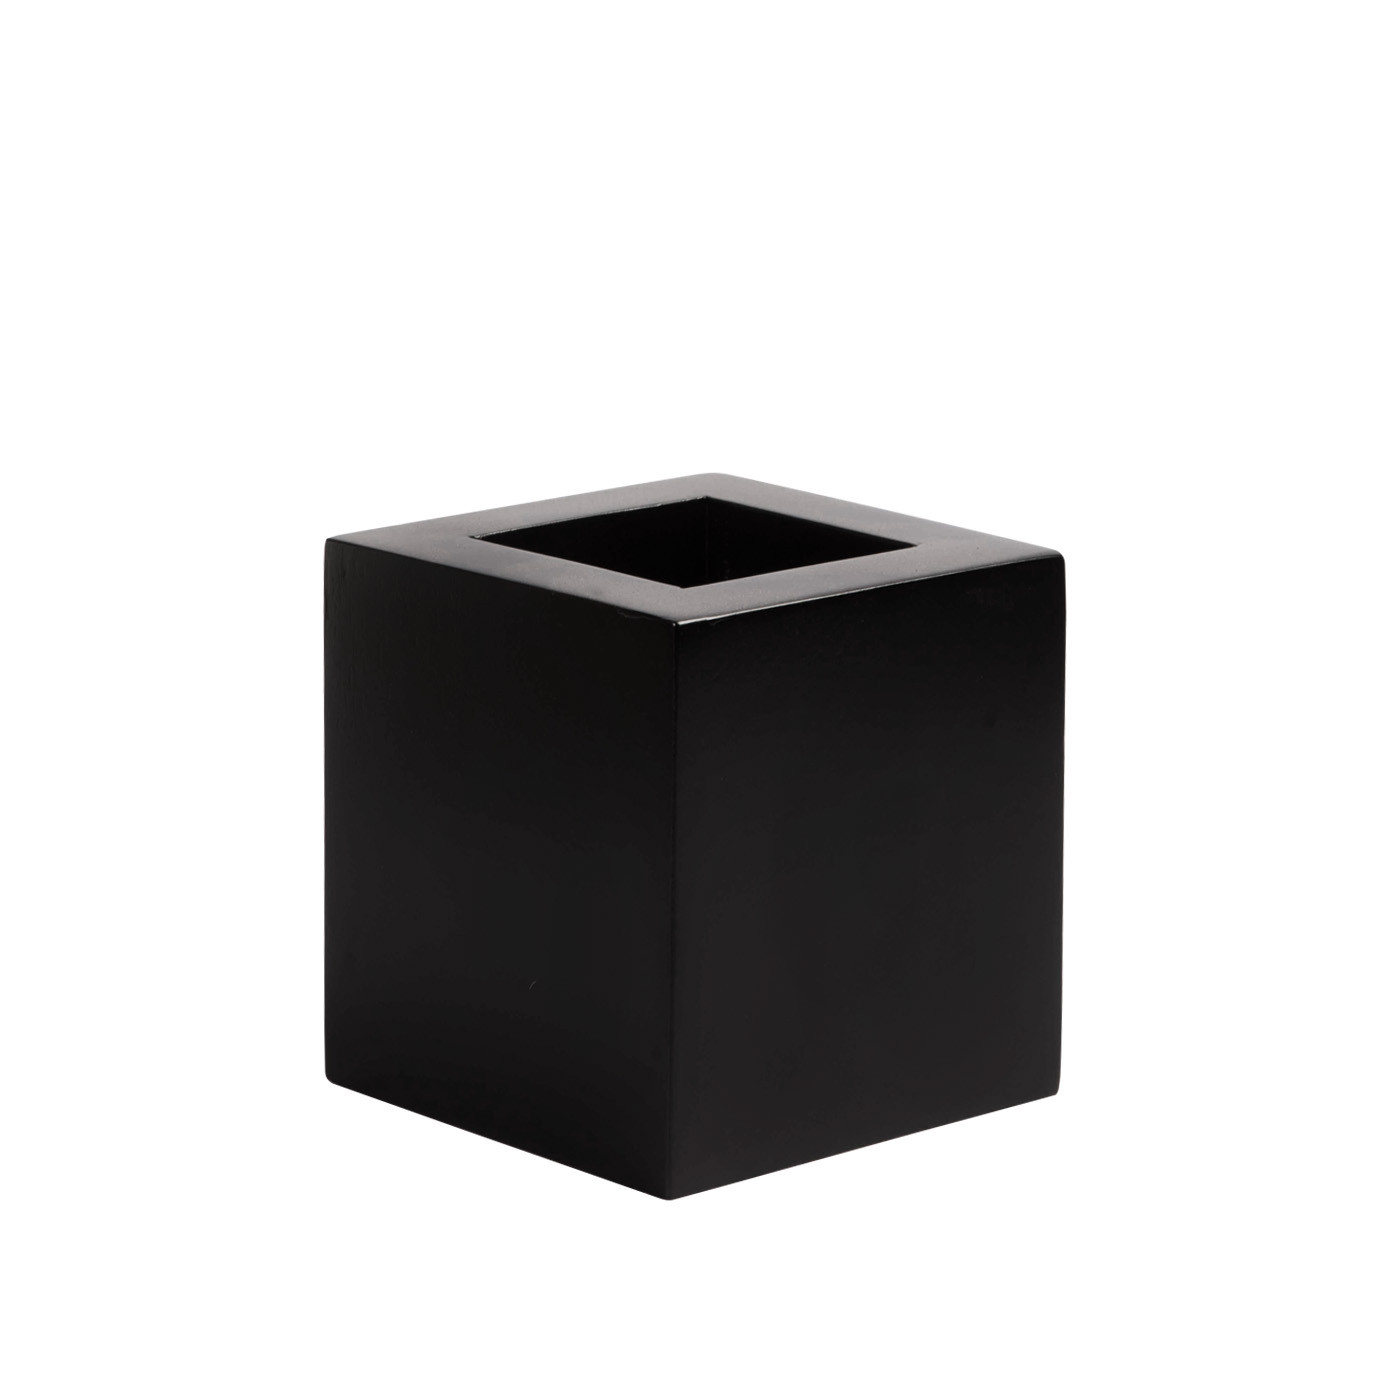 Mukō Short Planter Black